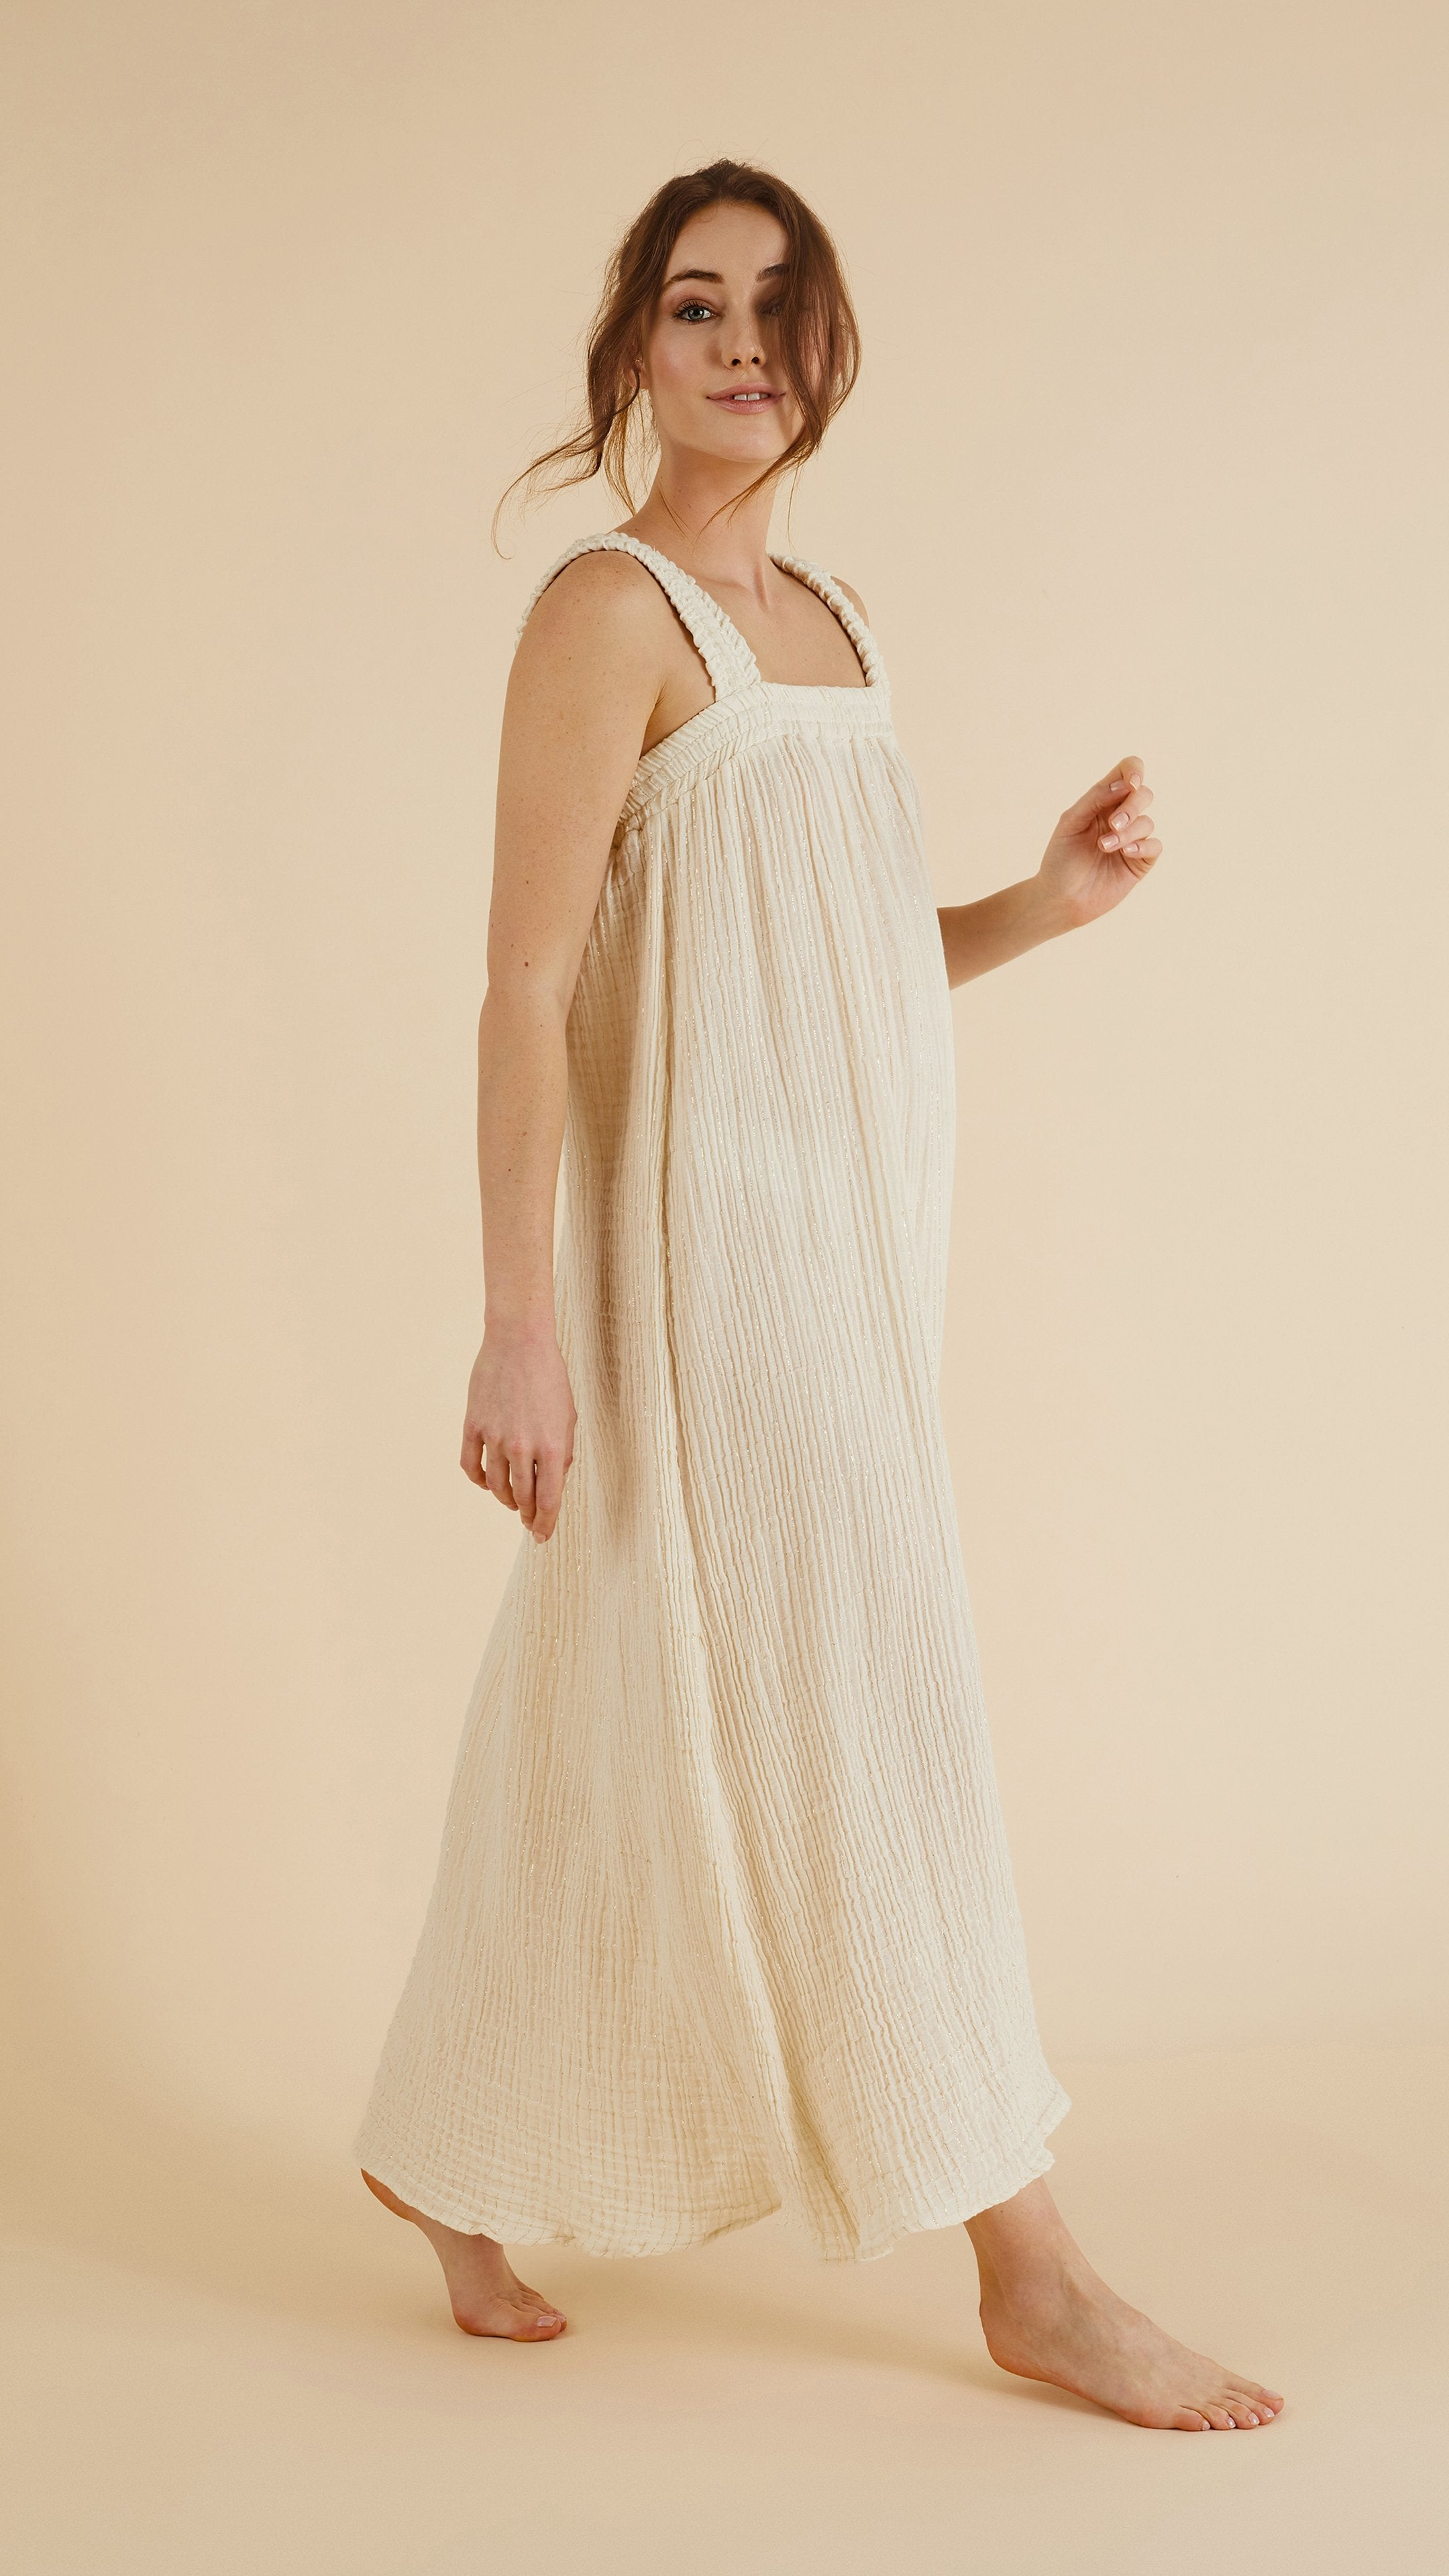 Side profile -  Noa Straps Maxi Dress in Natural with Gold Stripes